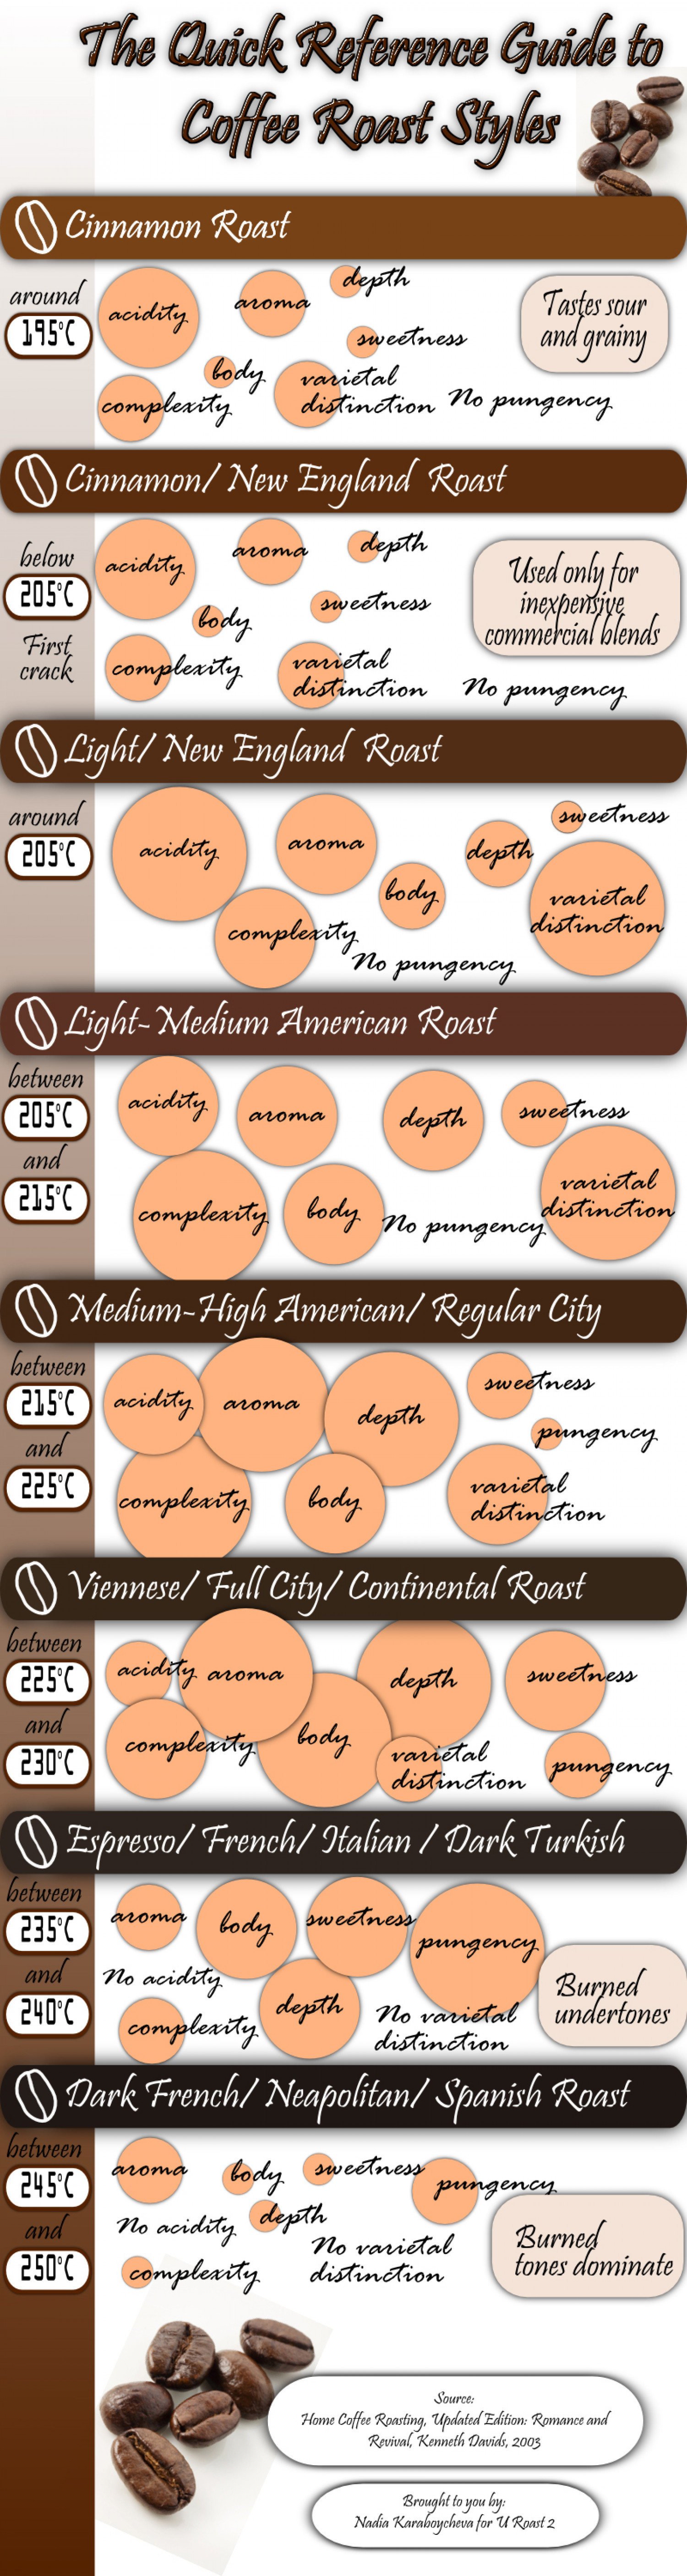 The Quick Reference Guide to Coffee Roast Styles Infographic